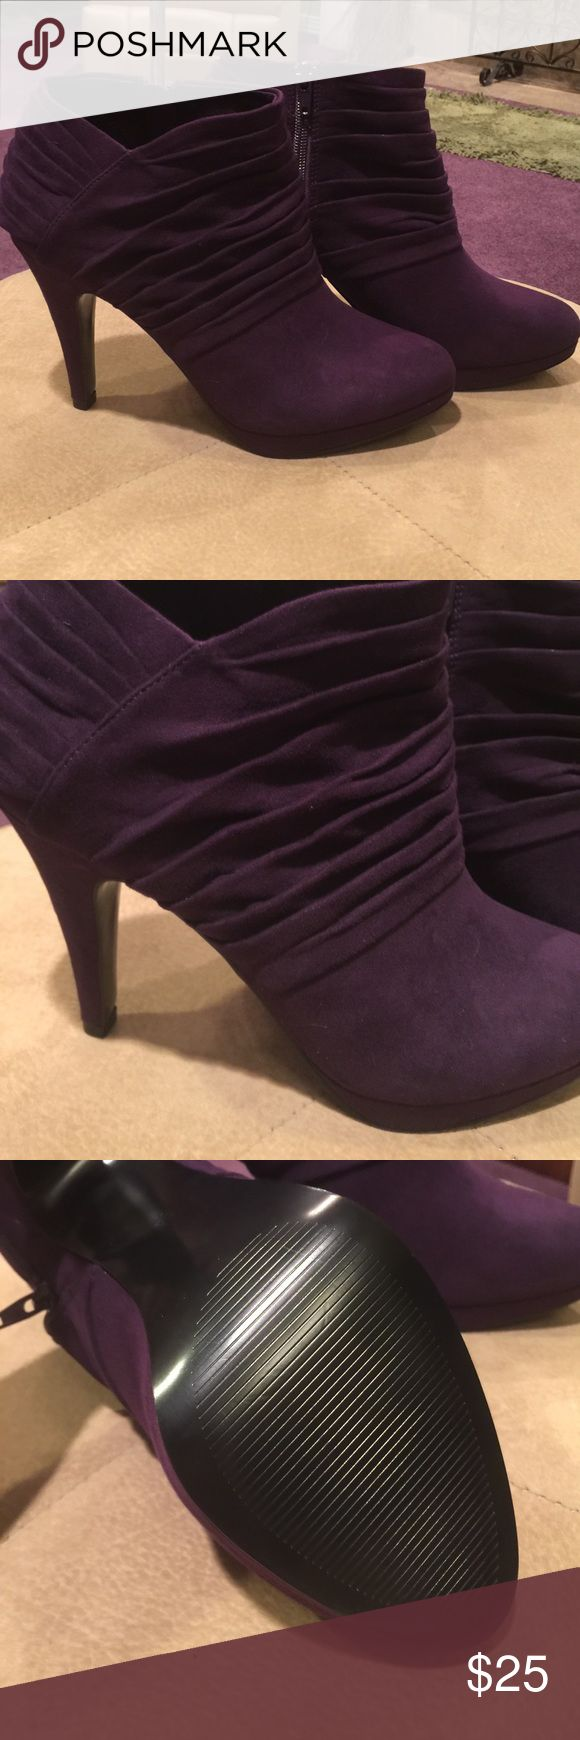 Size 8.5 purple ankle boots Size 8.5 purple ankle boots. New, never worn except to try them on sitting down, only to realize at home that my knee injury is NOT fond of heels this high! Sexy & drool-worthy.  Come & get 'em! Coach & Four Shoes Ankle Boots & Booties